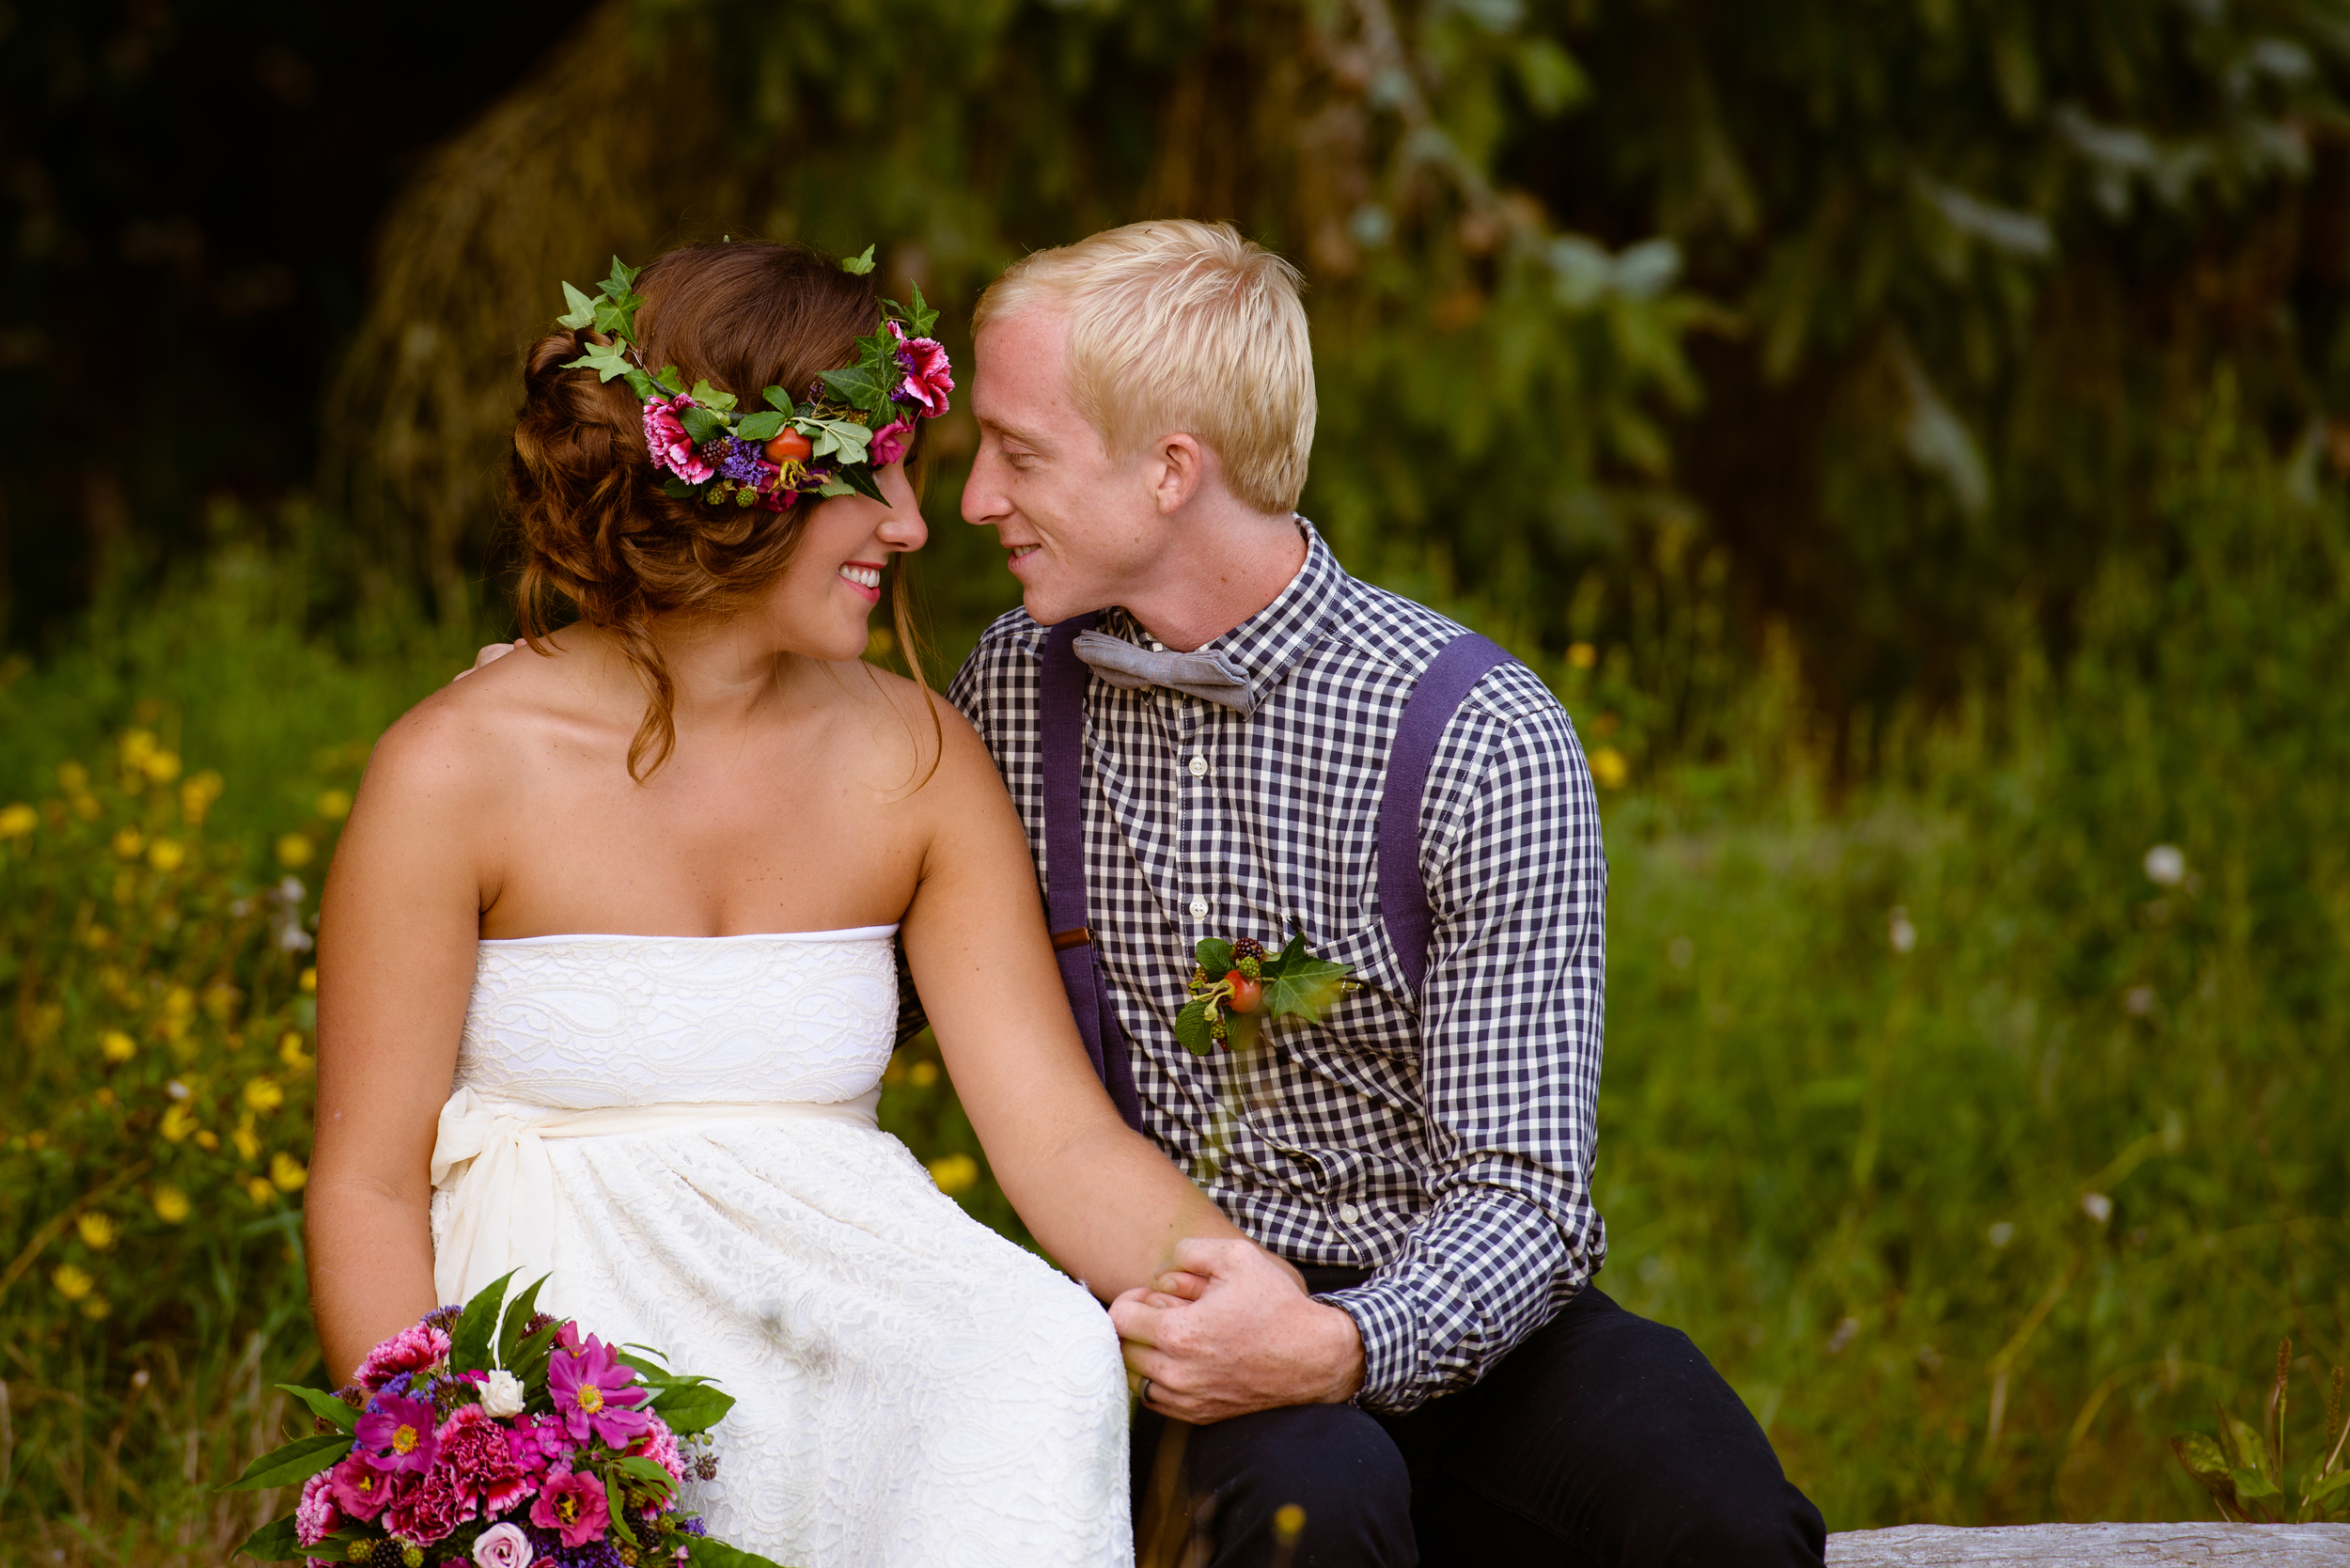 #woodland #wedding #love www.sashataylorweddings.com